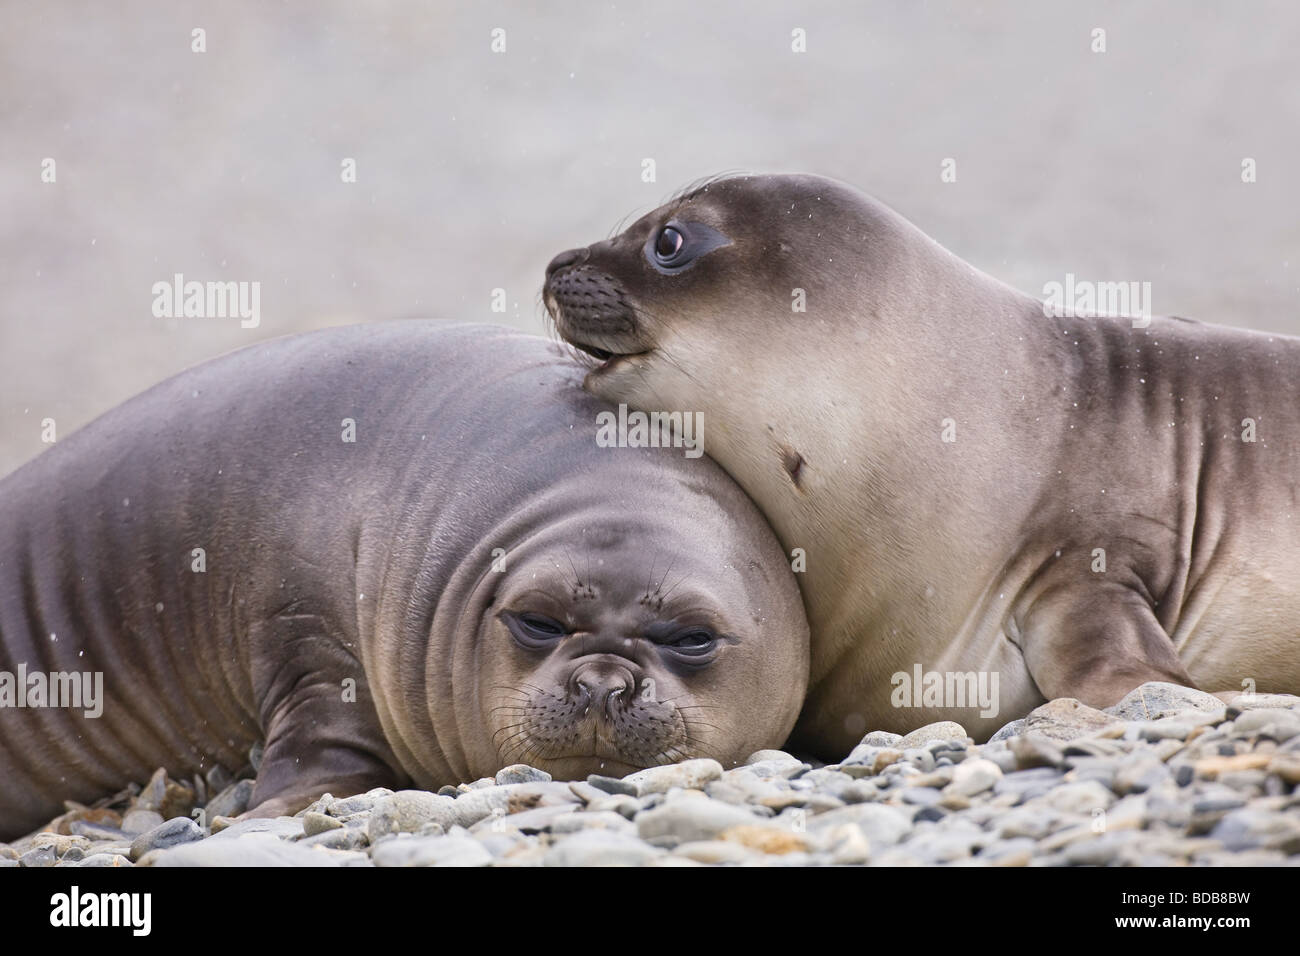 Southern elephant seal Mirounga leonina pups Fortuna Bay South Georgia Antarctica - Stock Image